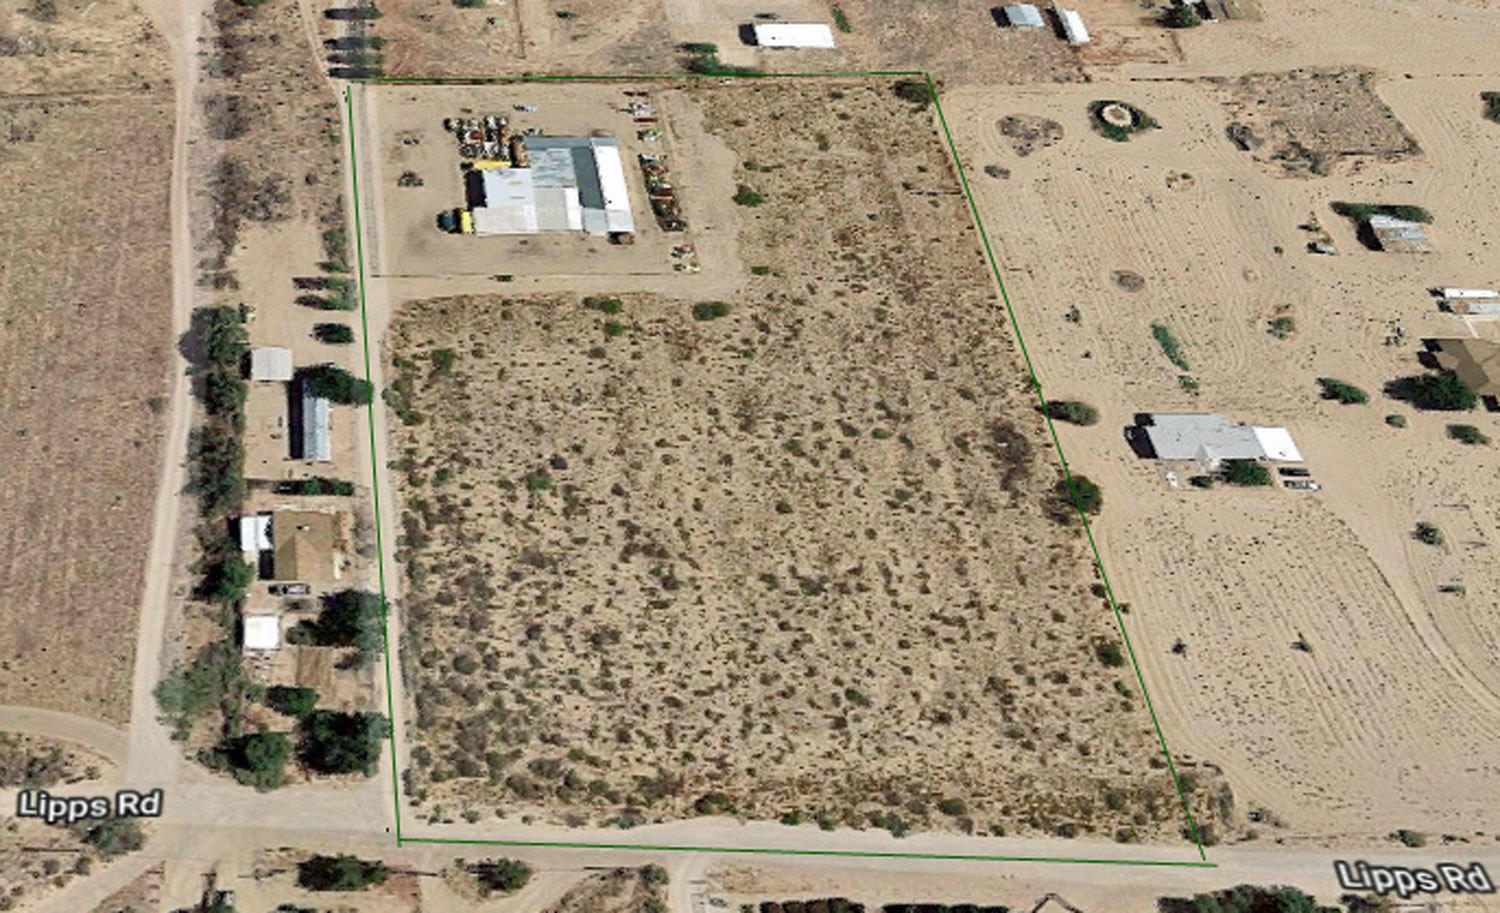 715 LIPPS Road, Anthony, New Mexico 88021, ,Land,For sale,LIPPS,809070